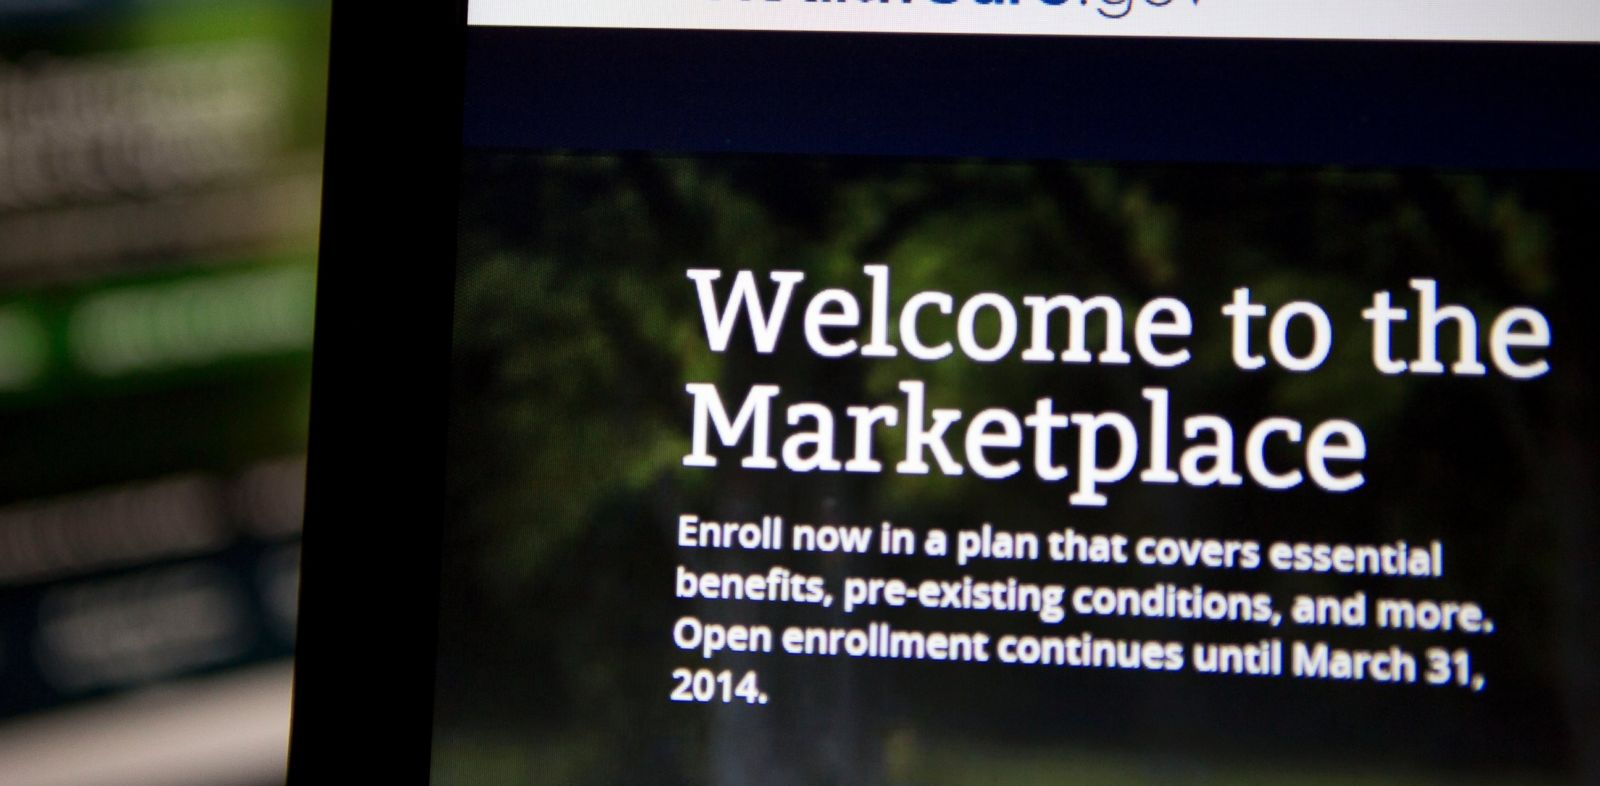 PHOTO: The Healthcare.gov website is displayed on laptop computers arranged for a photograph in Washington, D.C., U.S., on Oct. 24, 2013.